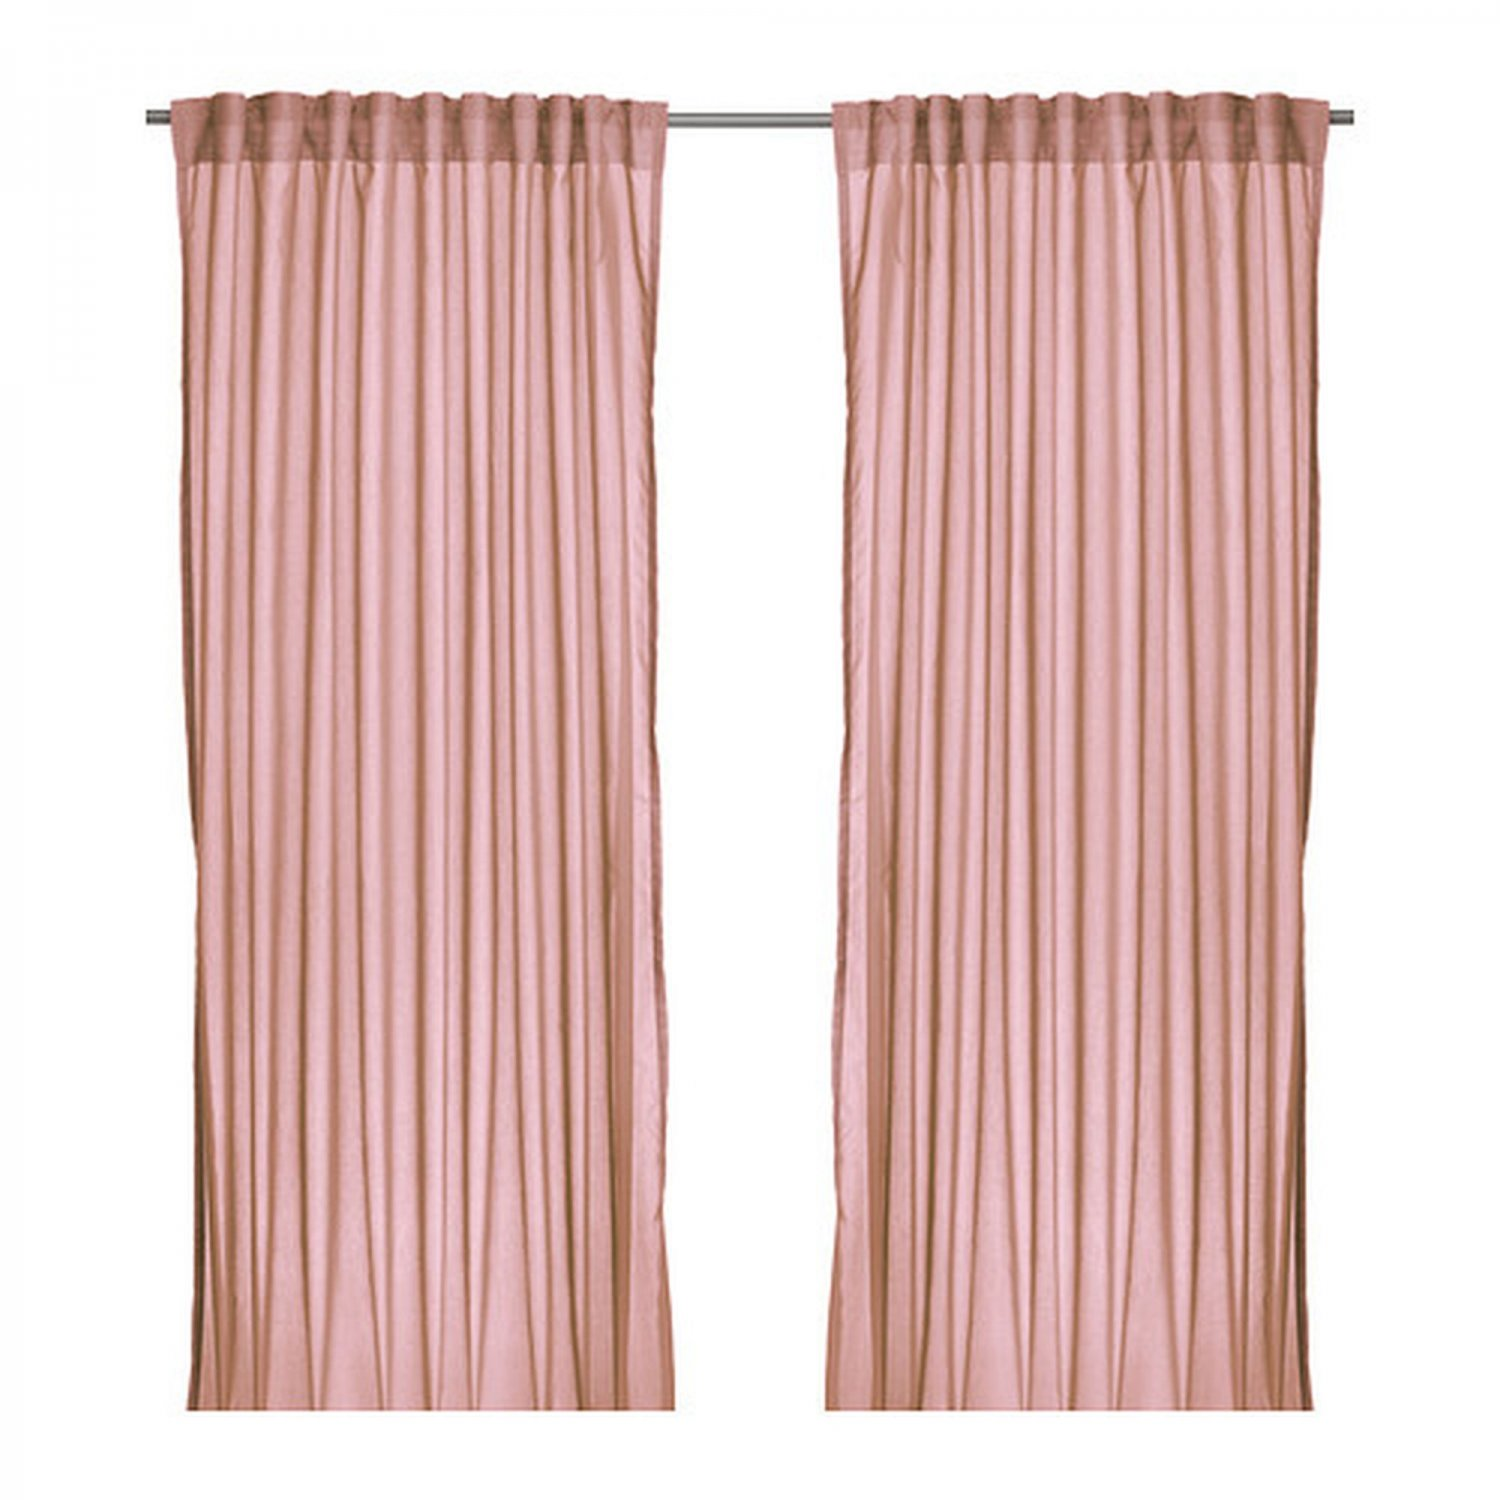 Ikea vivan curtains drapes pink 2 panels pale shell blush for Ikea curtain rods uk